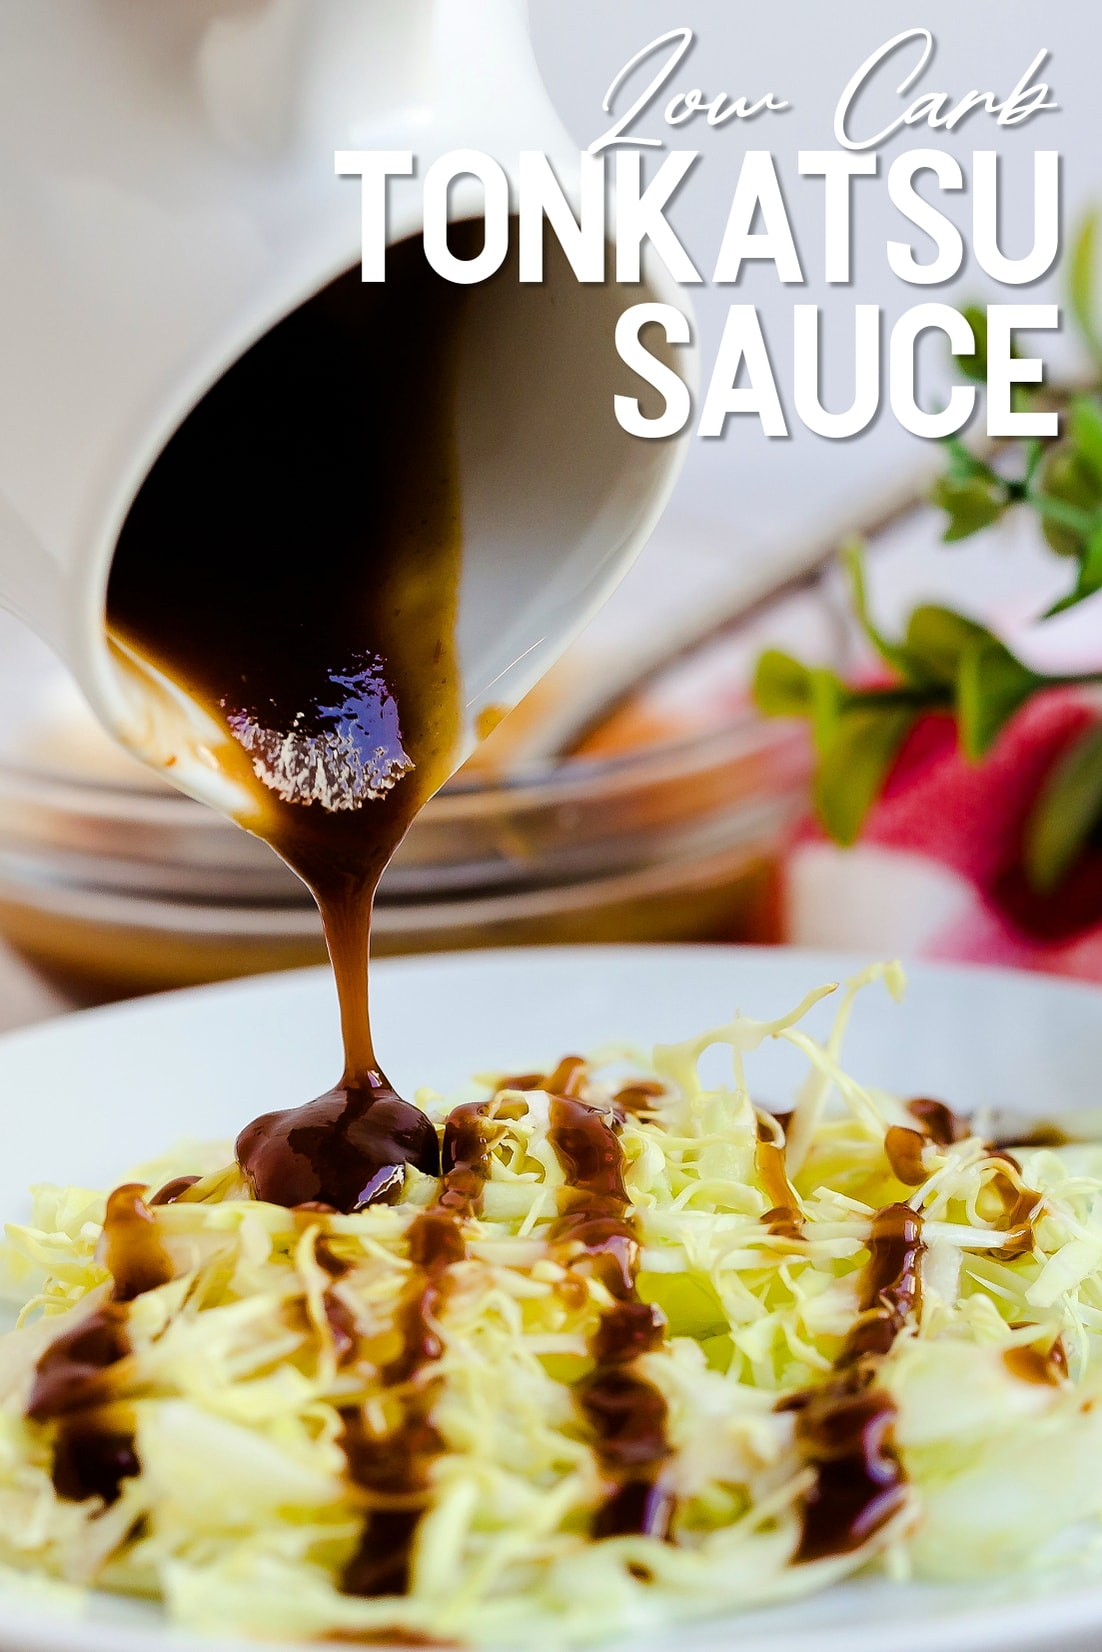 Low carb tonkatsu sauce being poured over a bed of cabbage